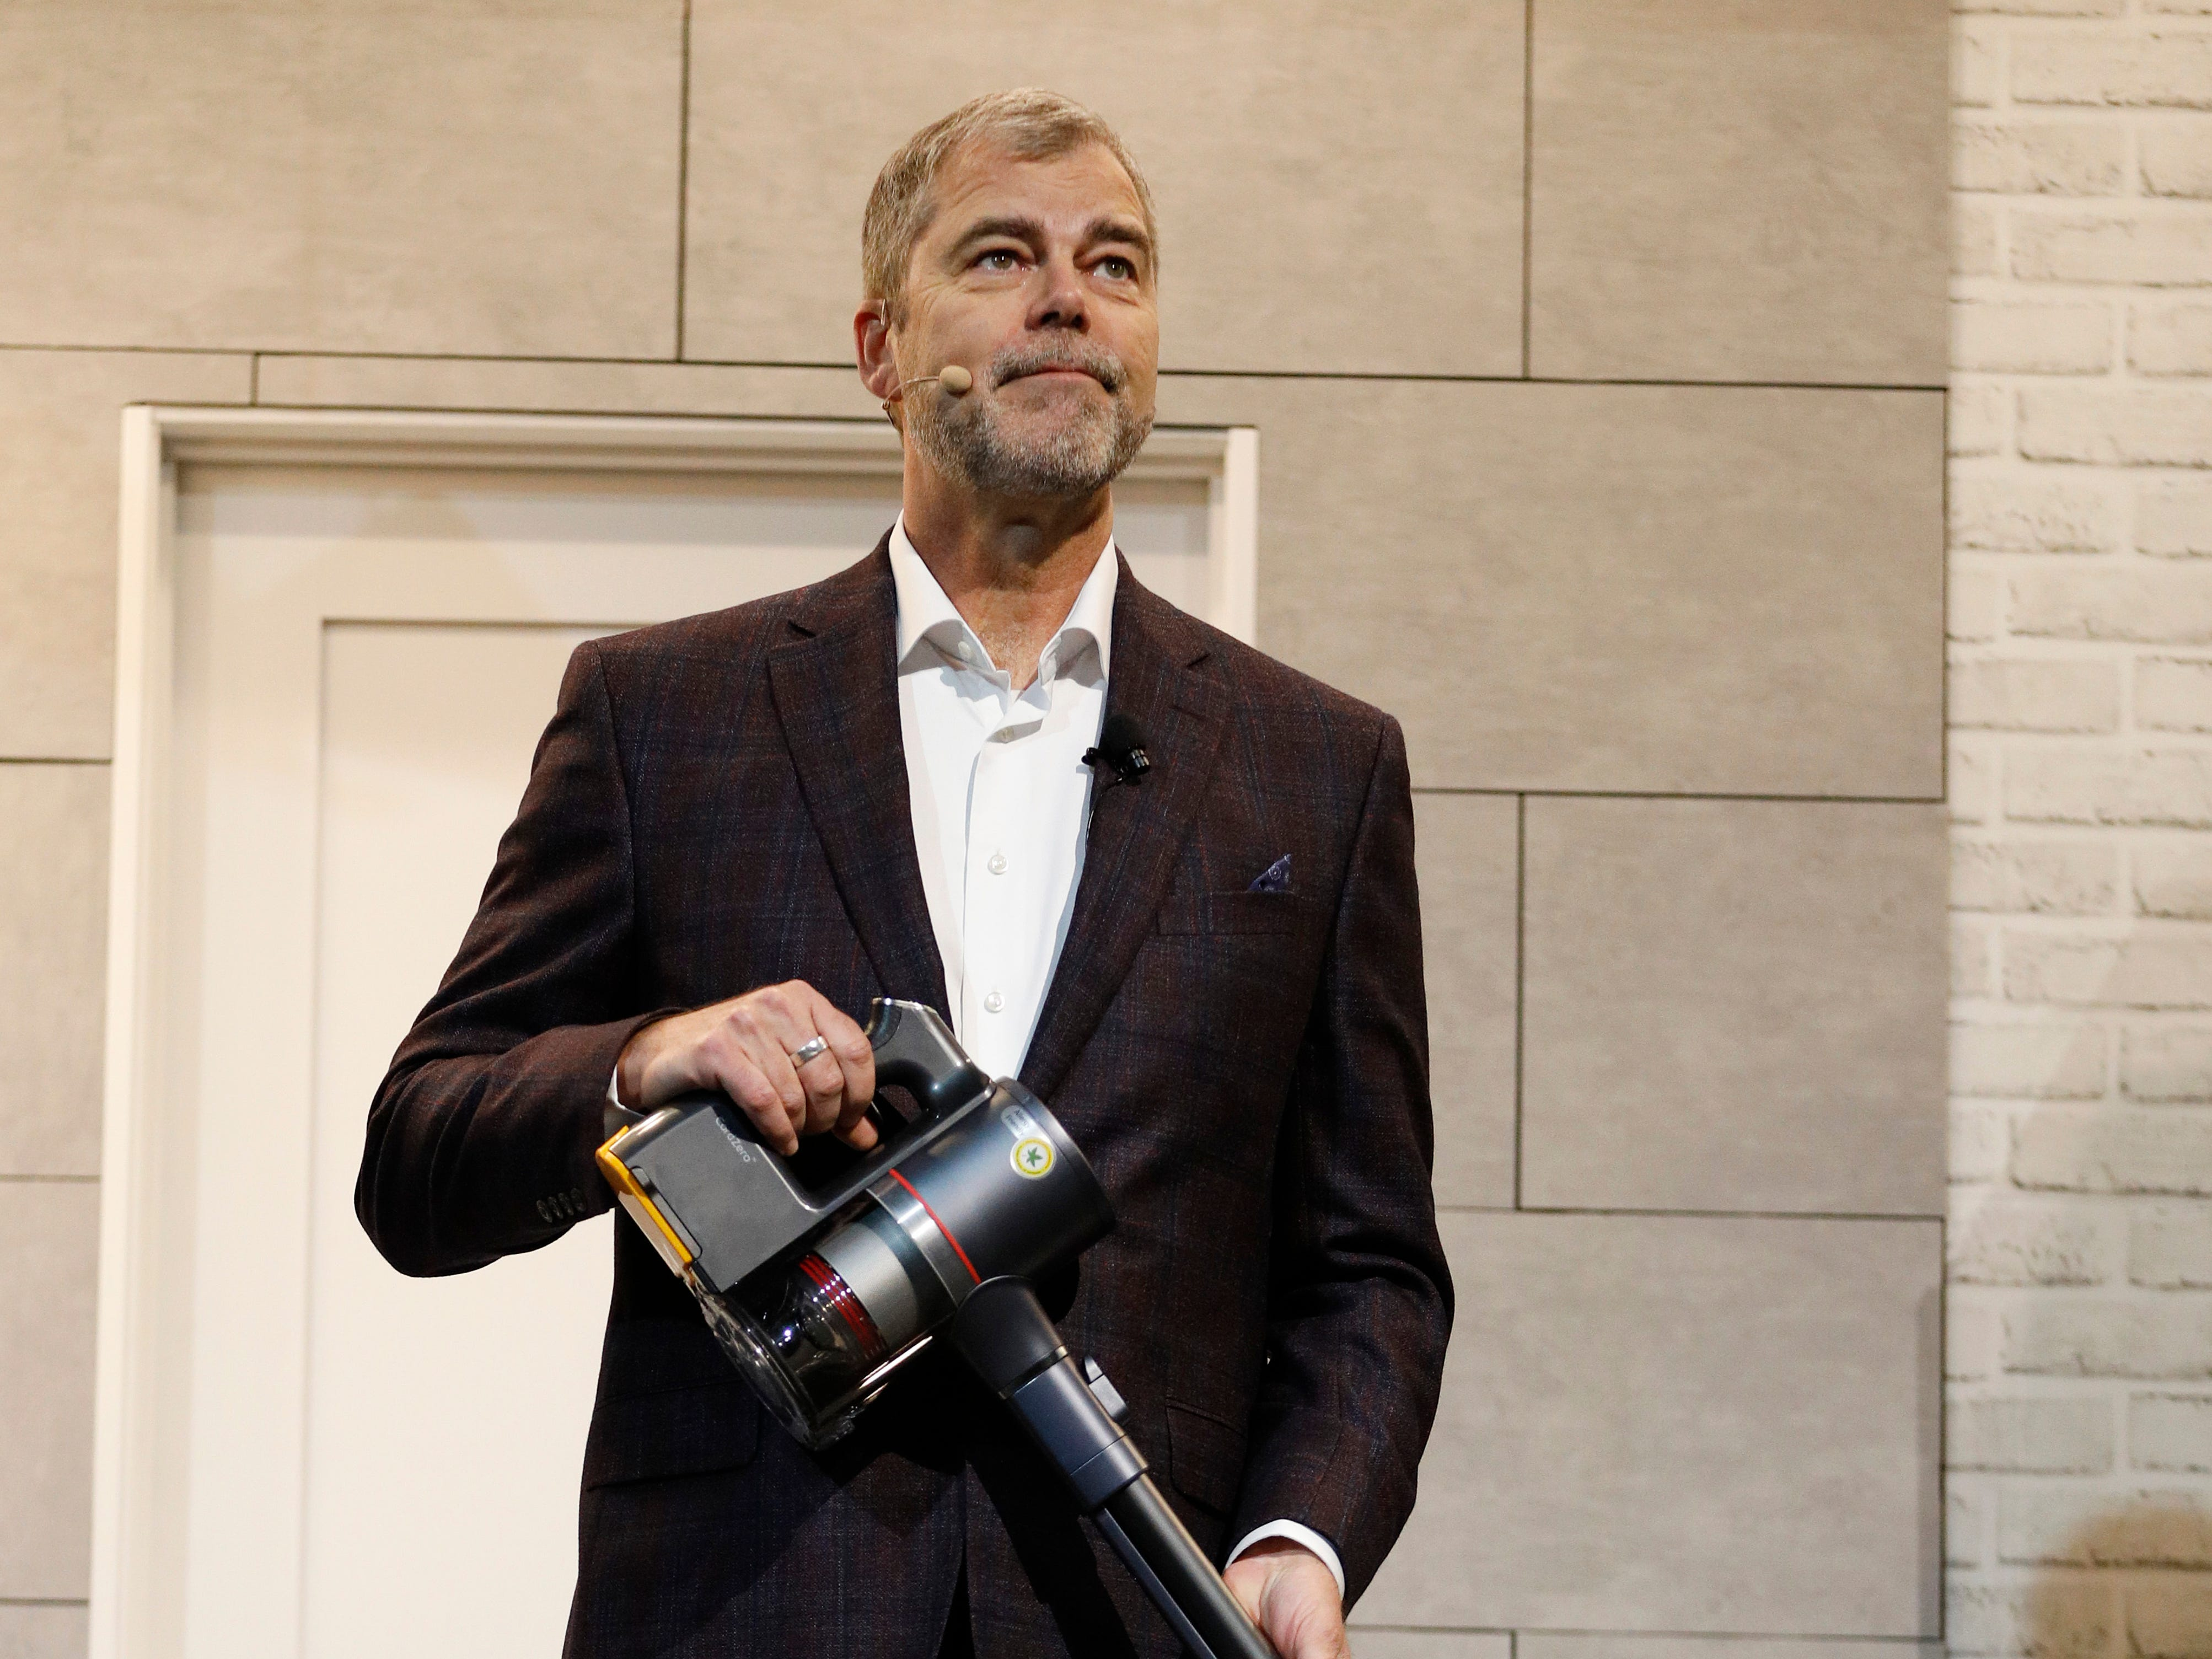 David VanderWaal, vice president of marketing for LG Electronics holds a CordZero A9 Stick Vacuum.